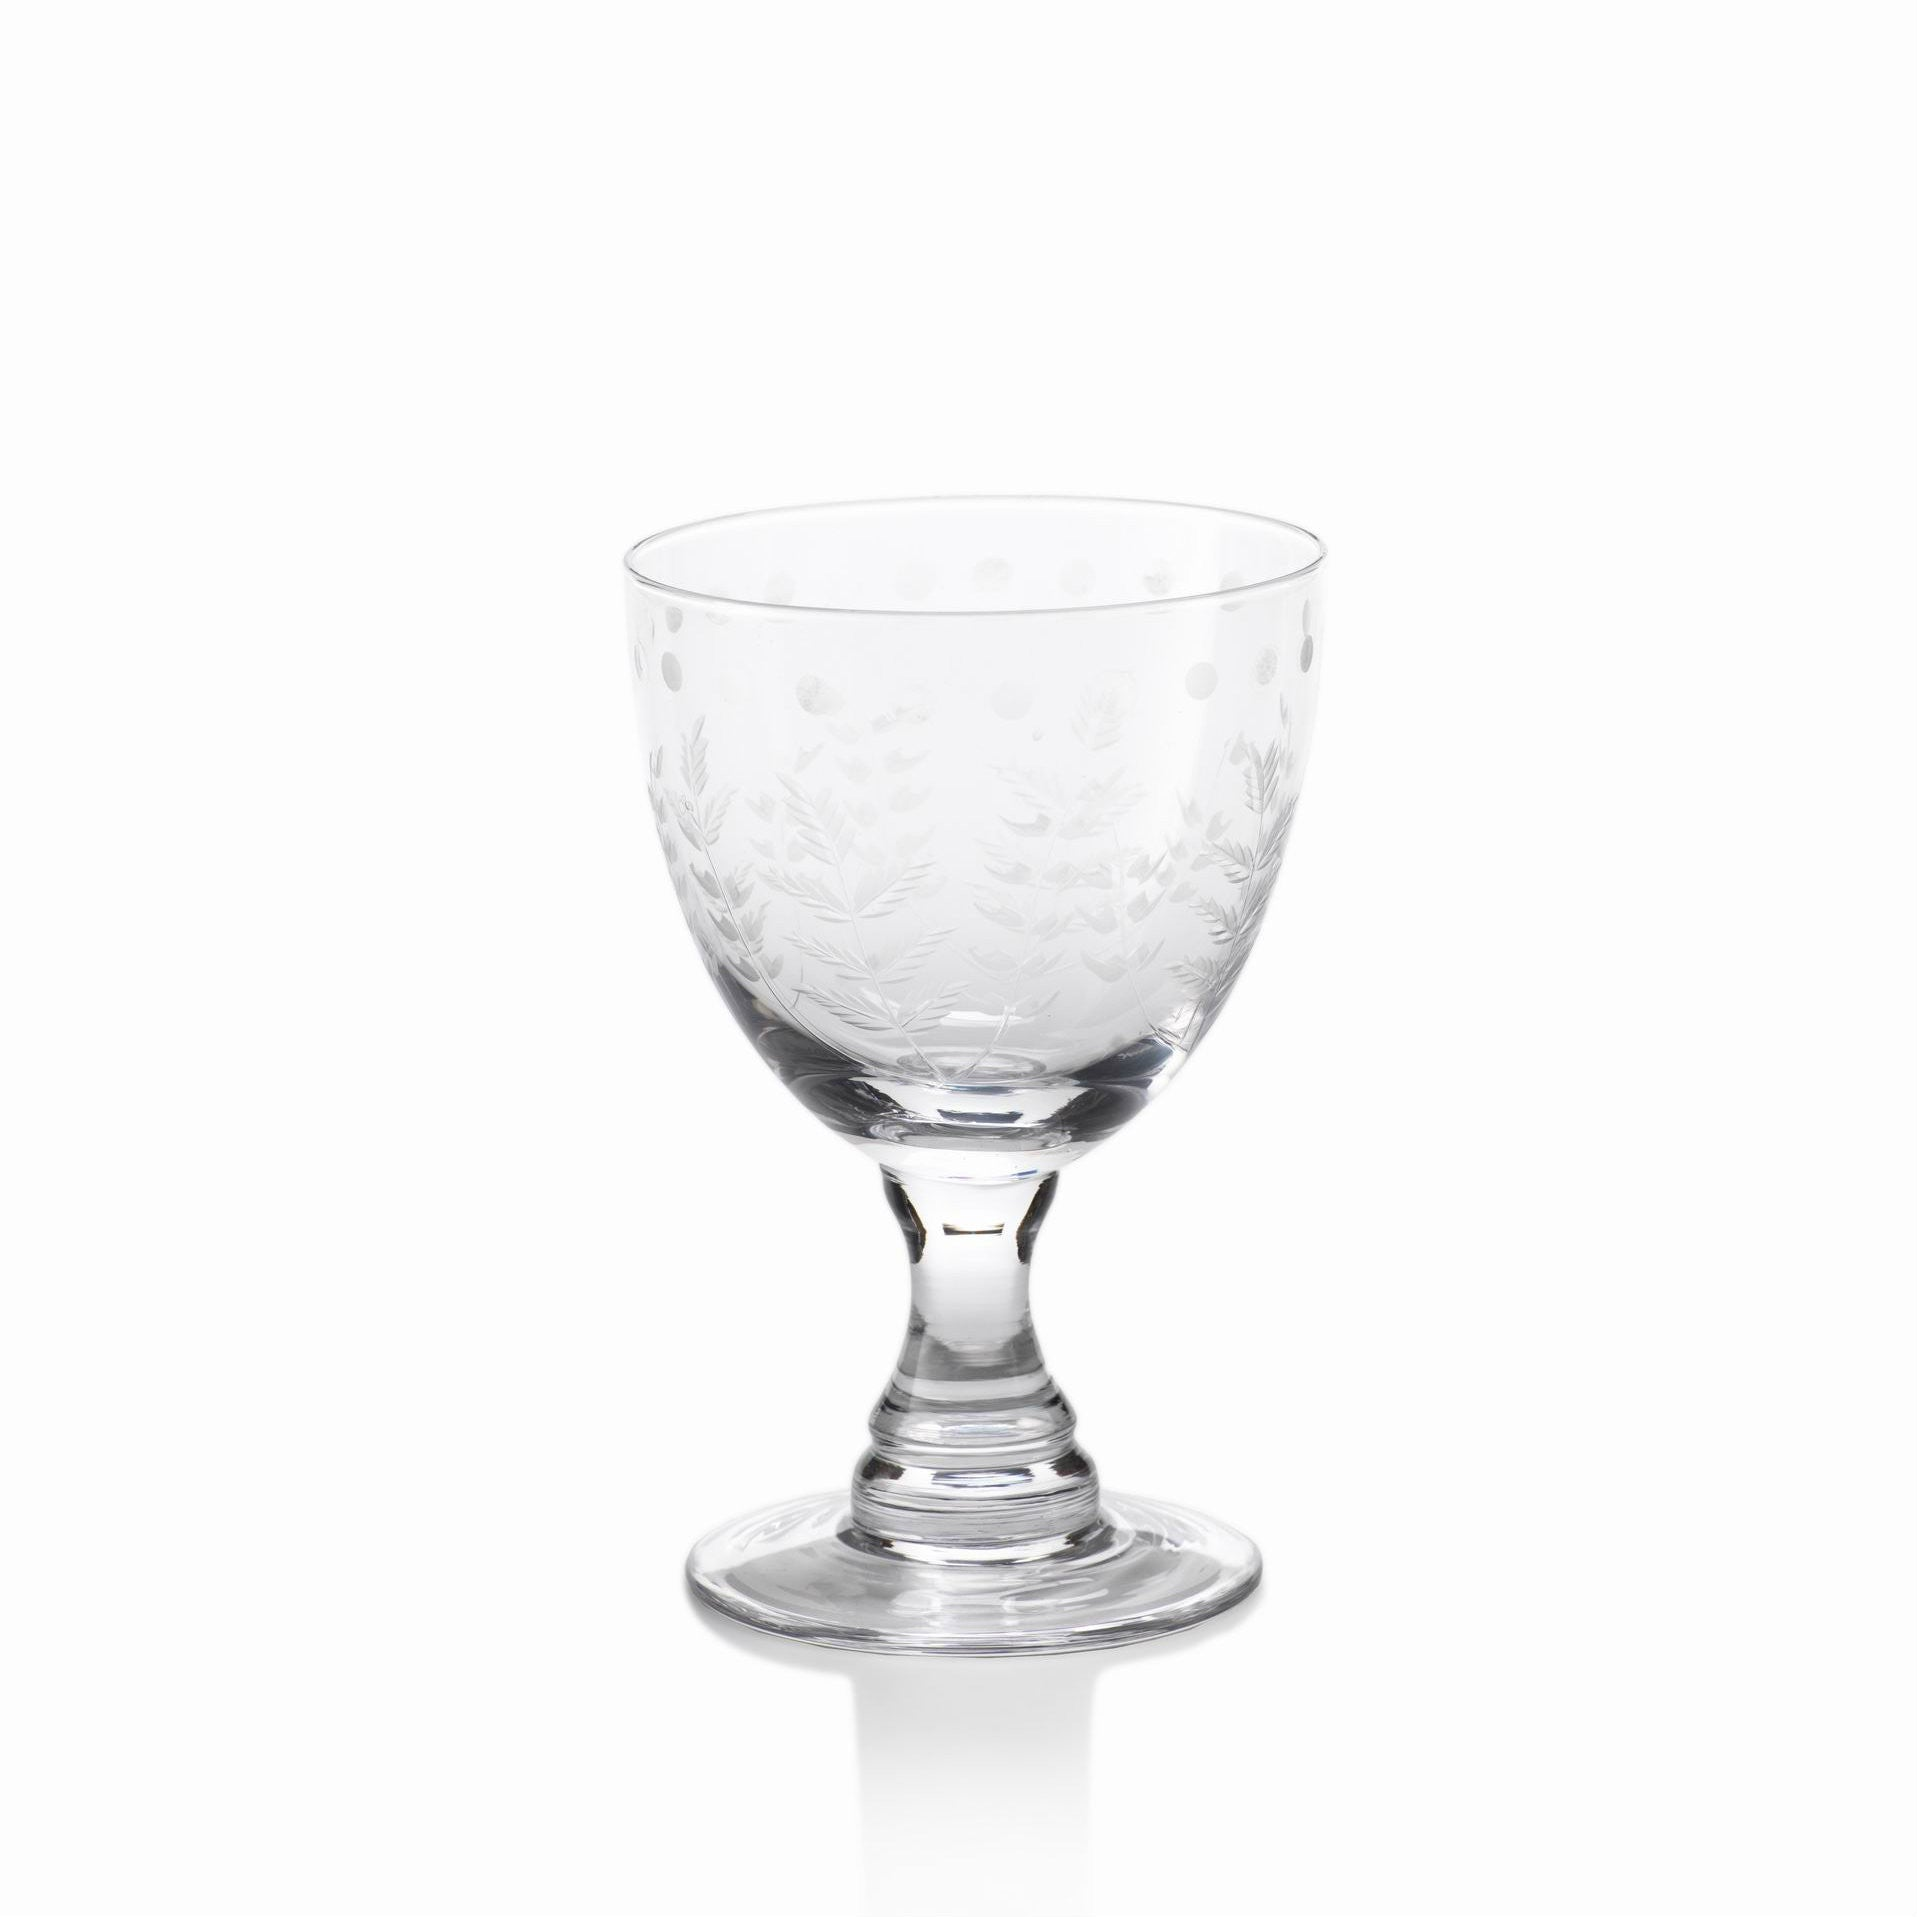 Spring Leaves Glassware - Set of 4 - Red White Glasses - CARLYLE AVENUE - 2